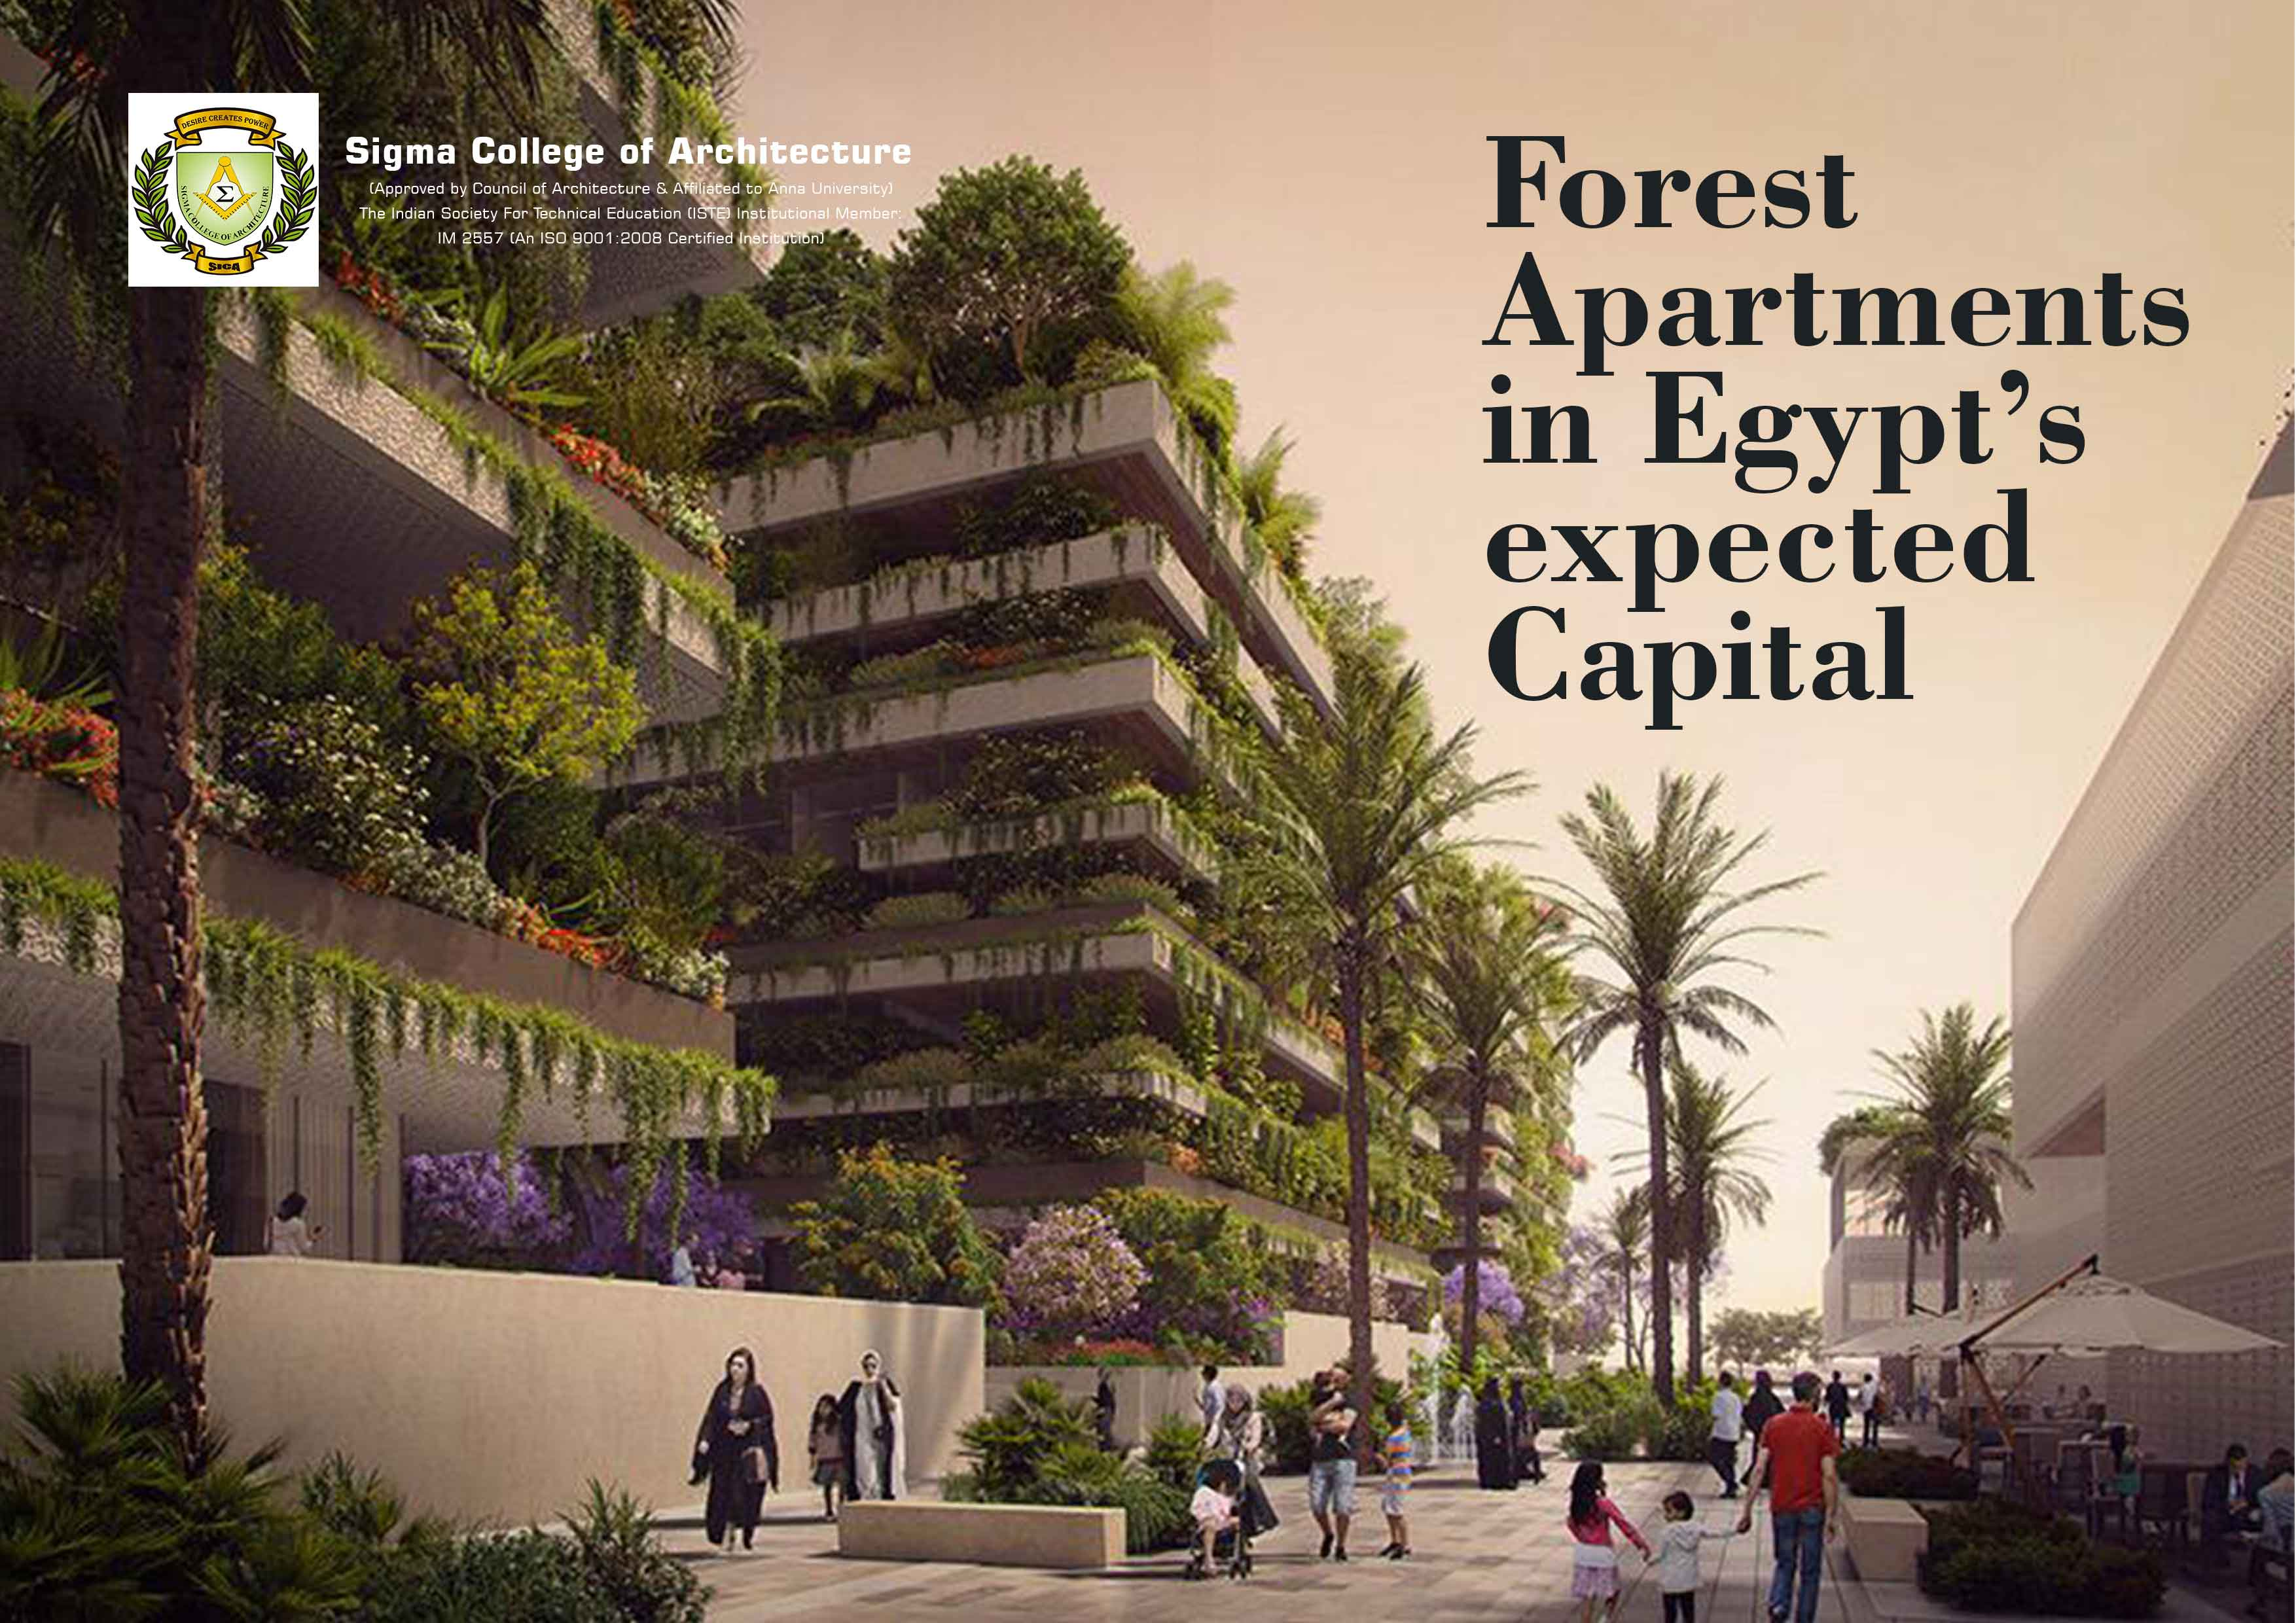 Forest Apartments in Egypt's expected Capital